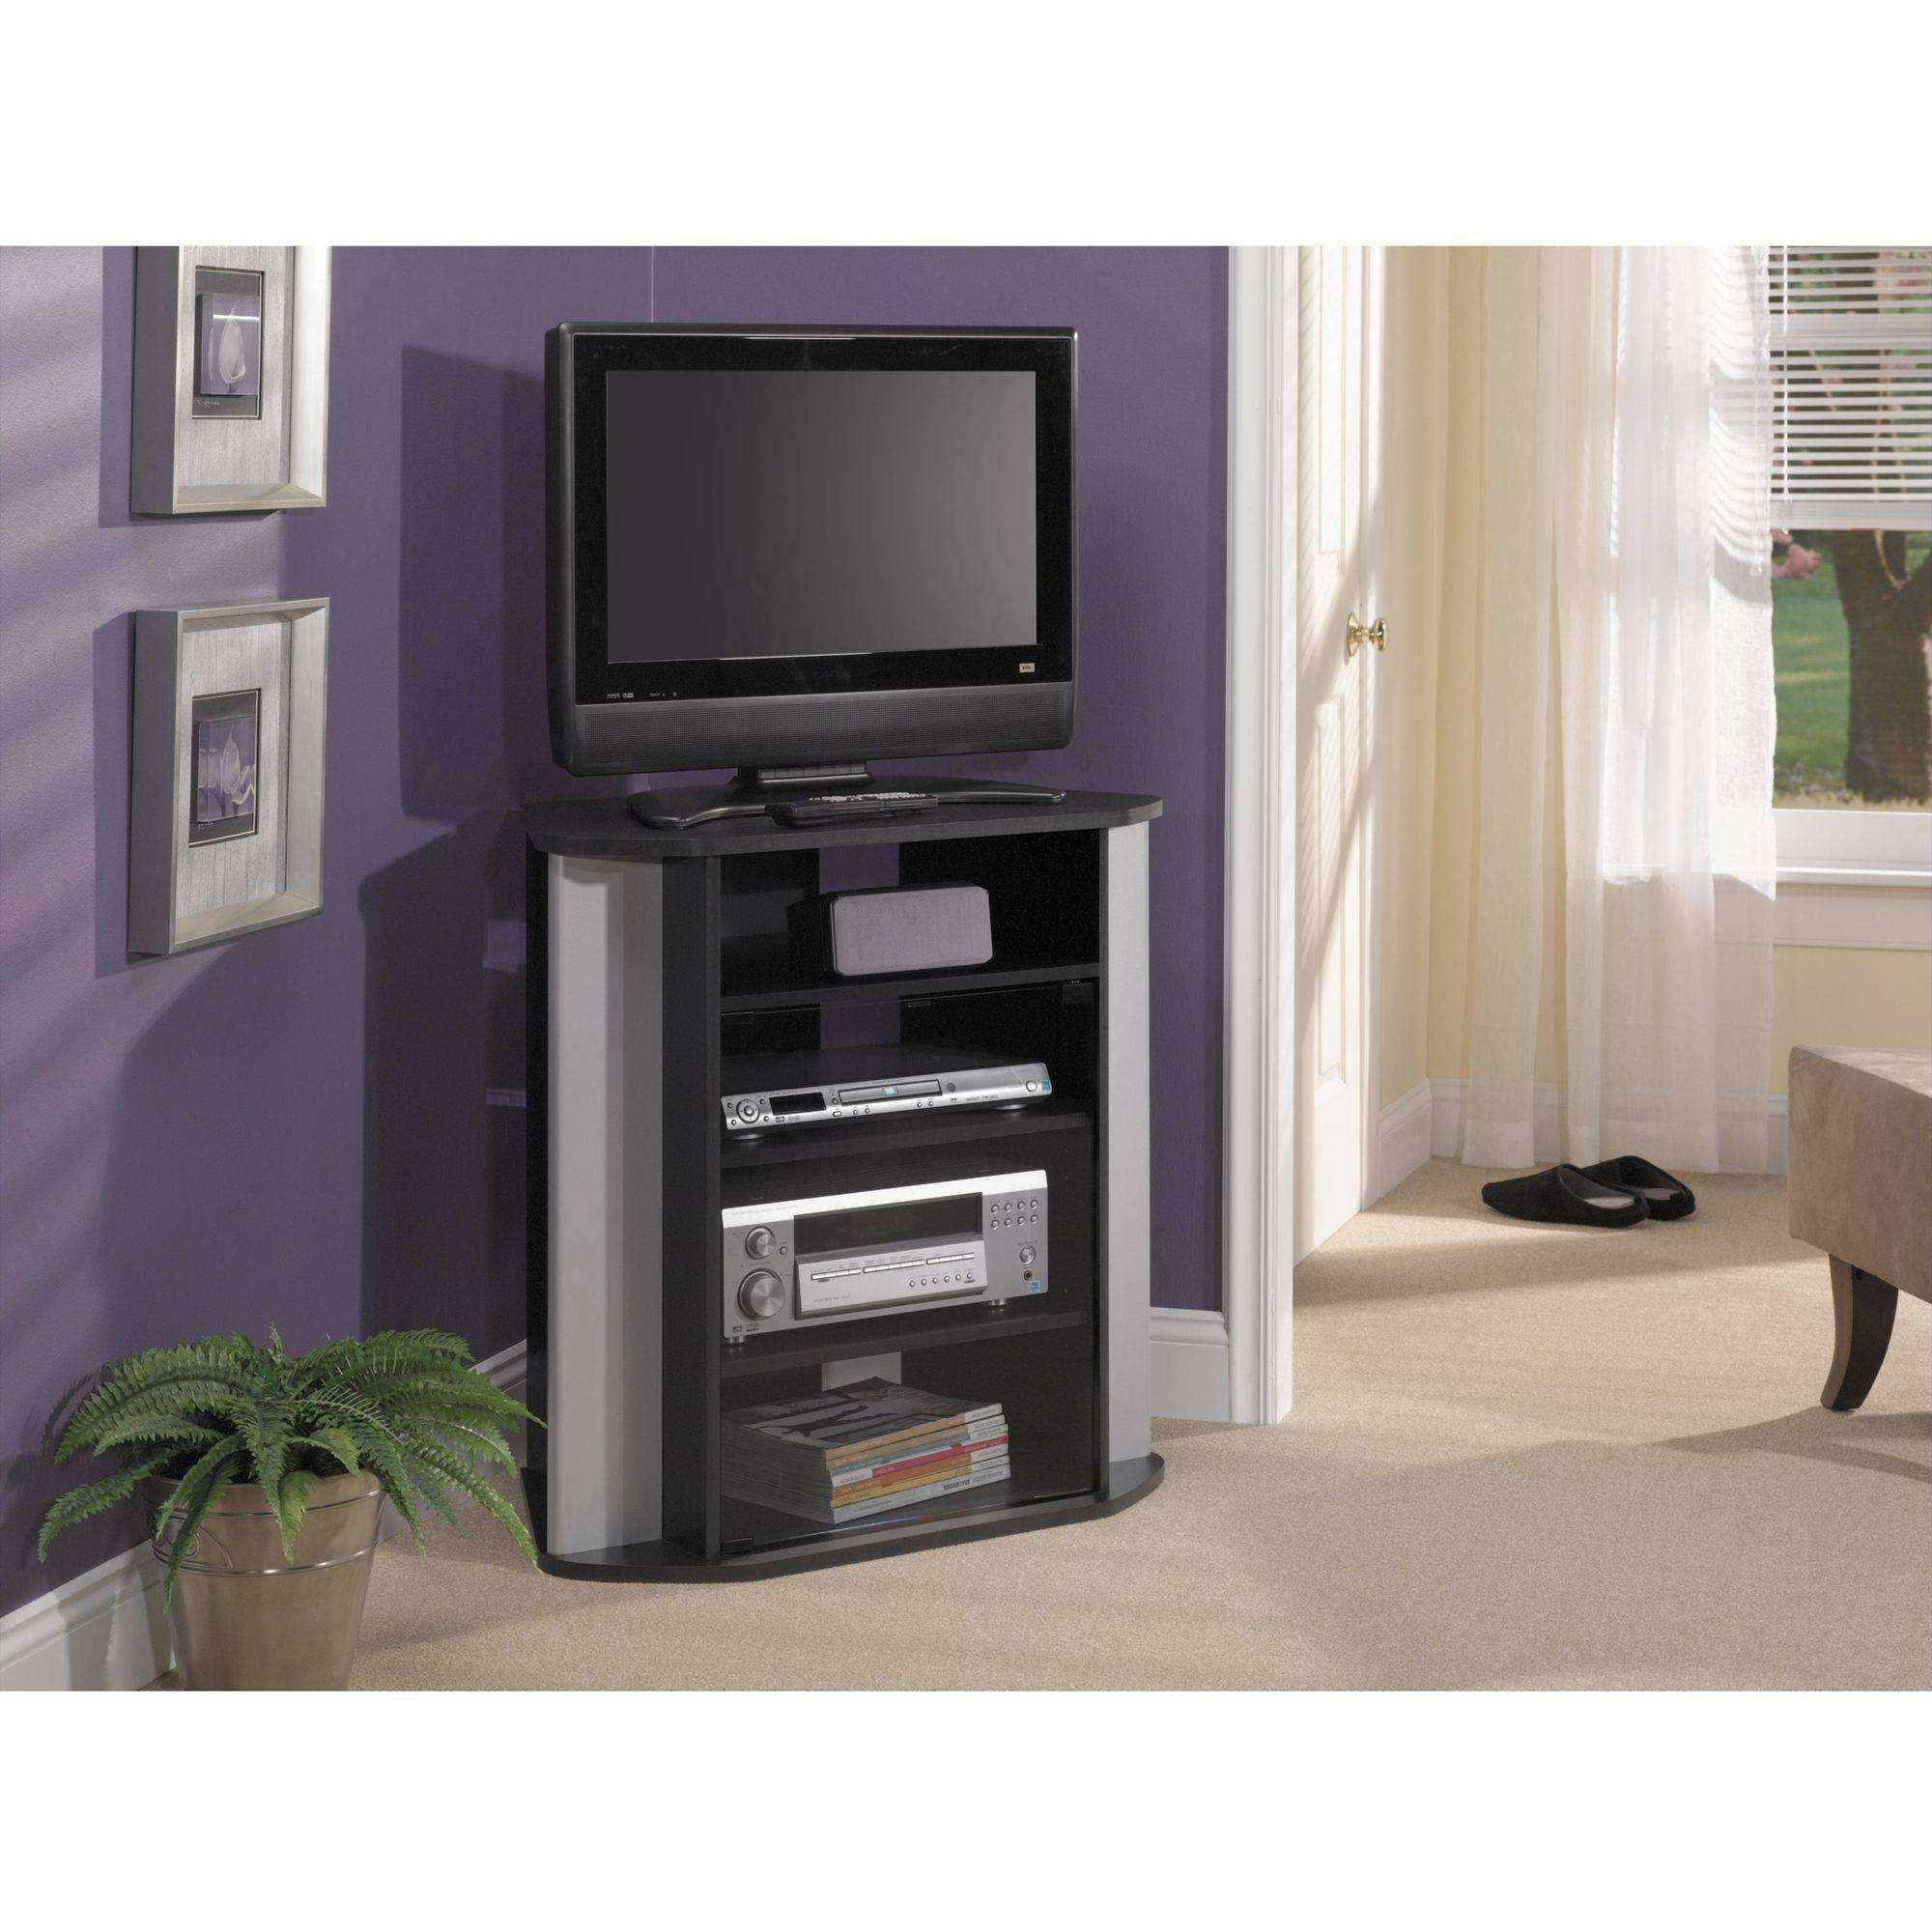 Best Corner Tv Stands For 50 Inch Tv 57 On Home Improvement Ideas Inside 50 Inch Corner Tv Cabinets (View 3 of 20)